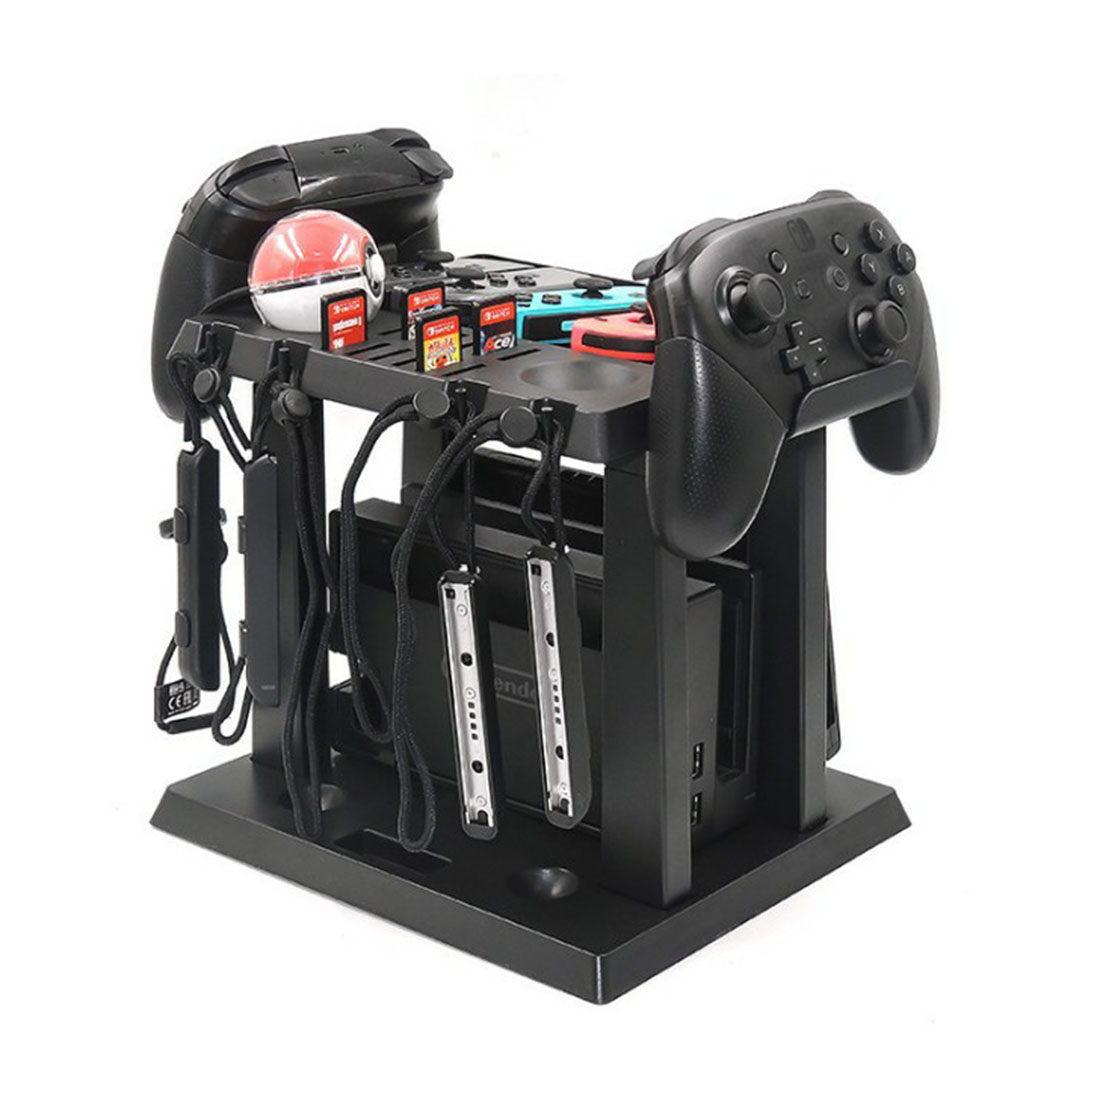 Multifunctional Game Storage Stand Rack Holder for Switch